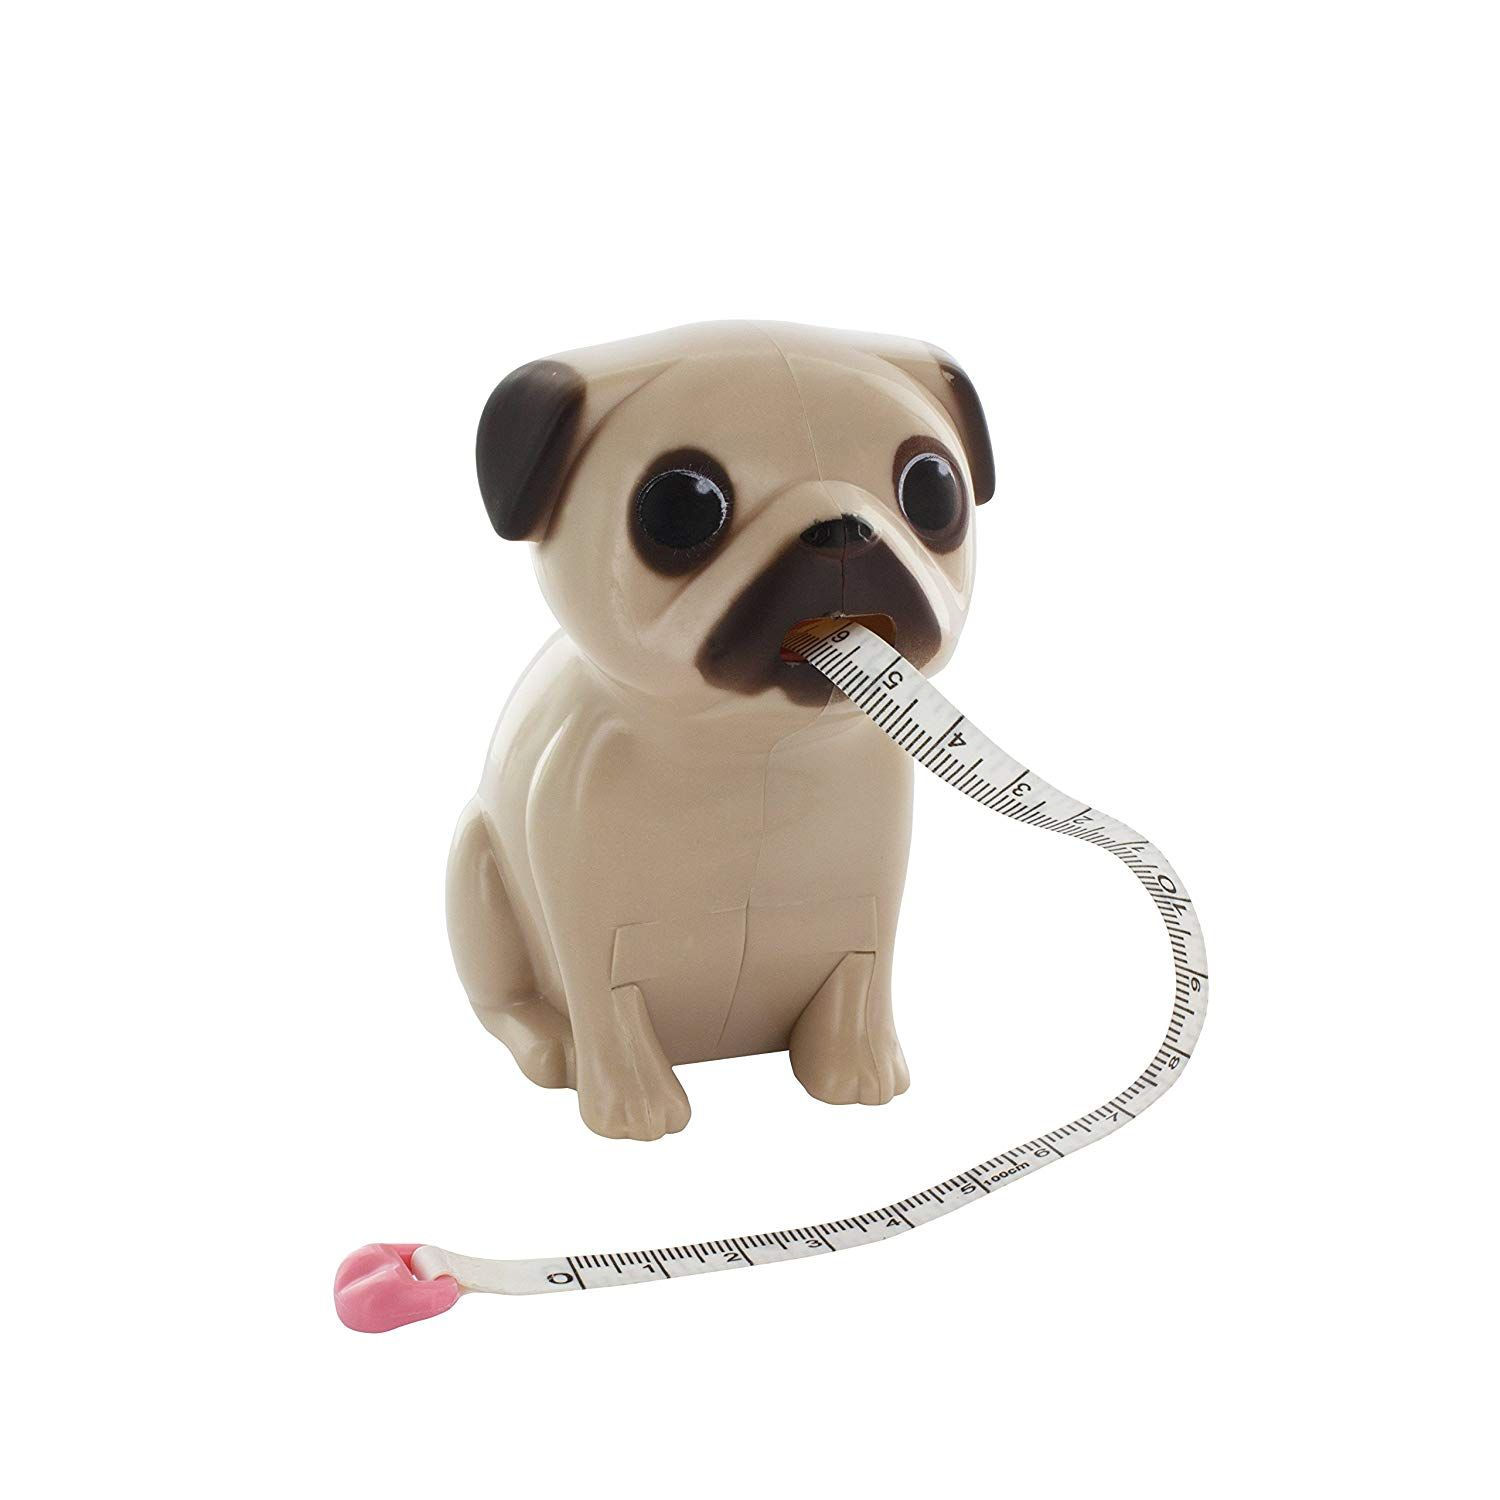 10 Incredibly Cool And Amazingly Useful Gadgets On Amazon Under 30 In 2020 Pugs Best Amazon Products Tape Measure